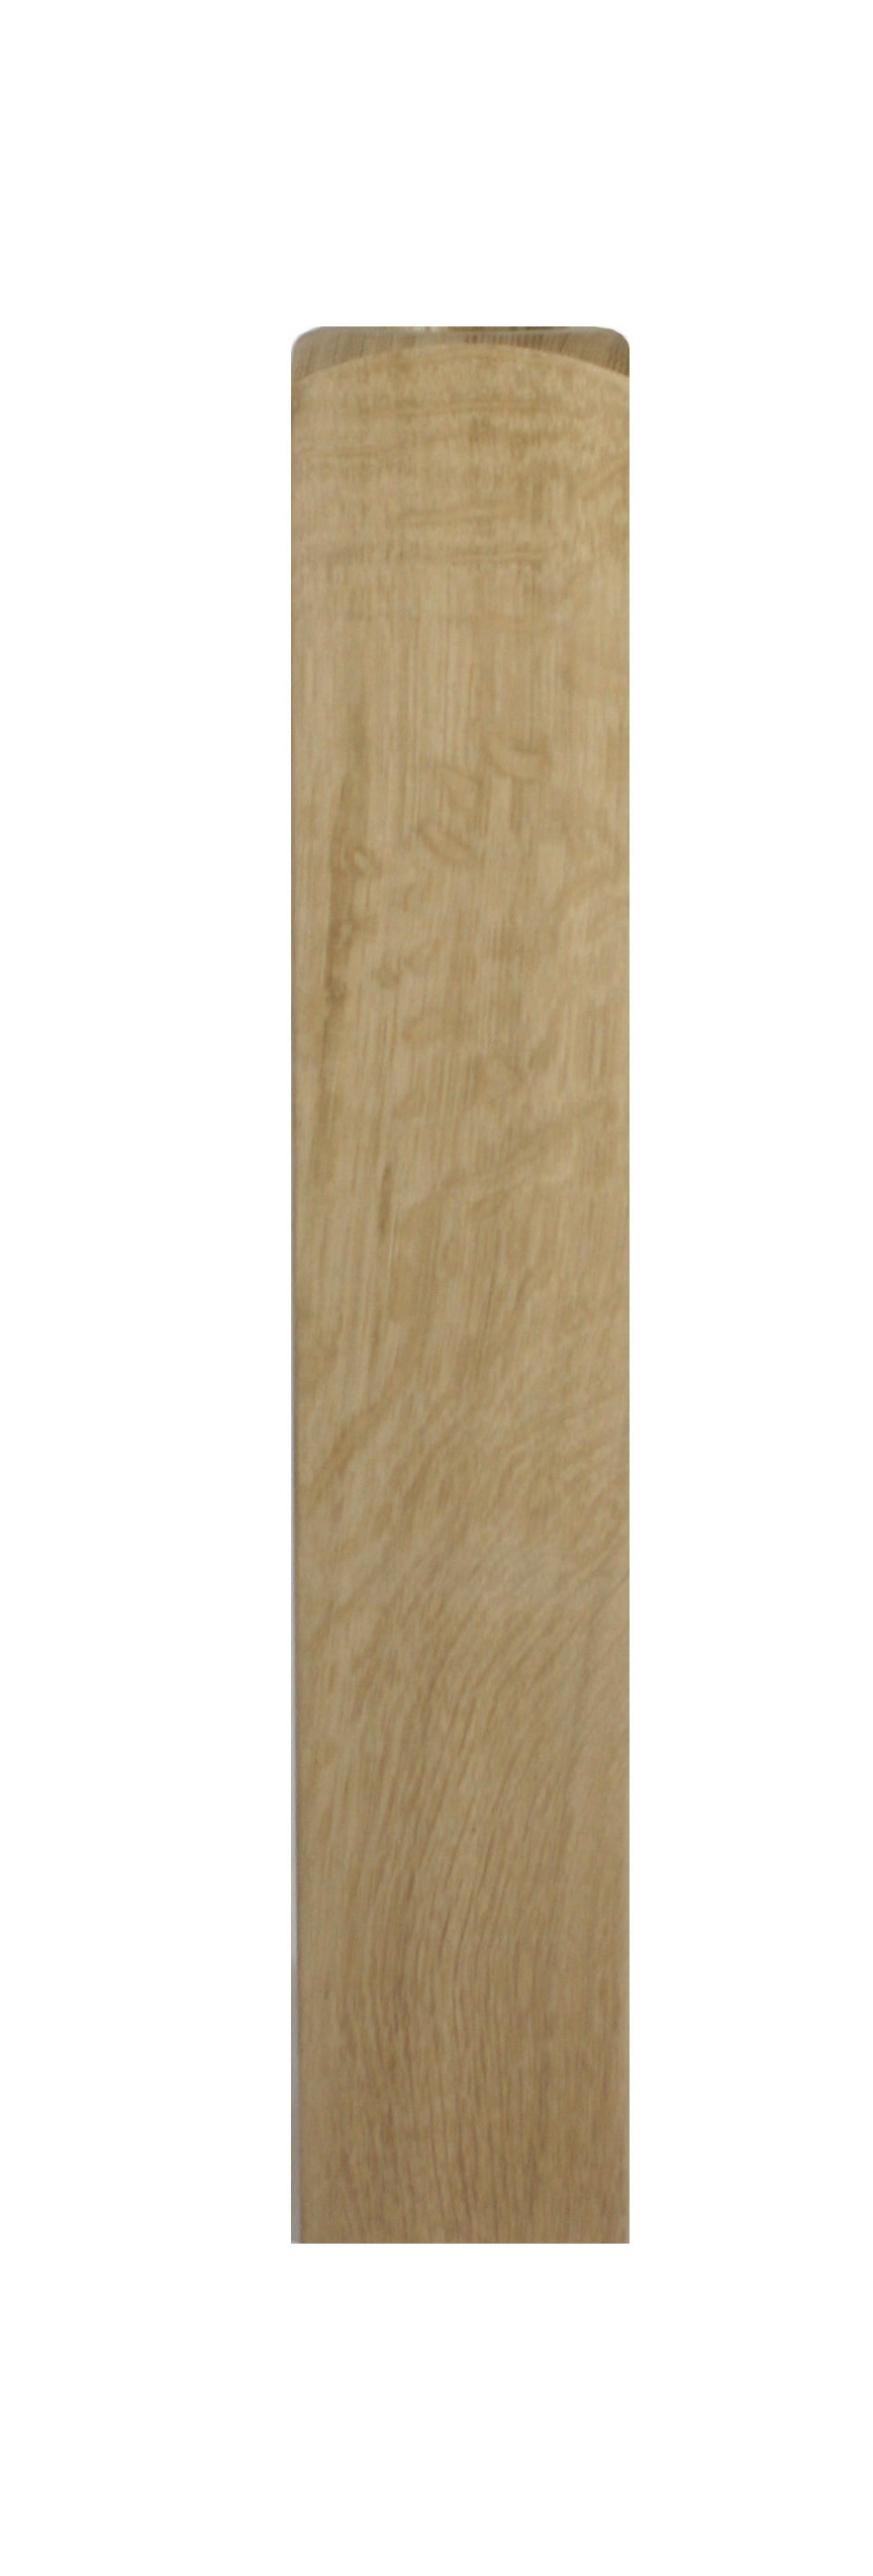 1 Oak Newel Base 510 90